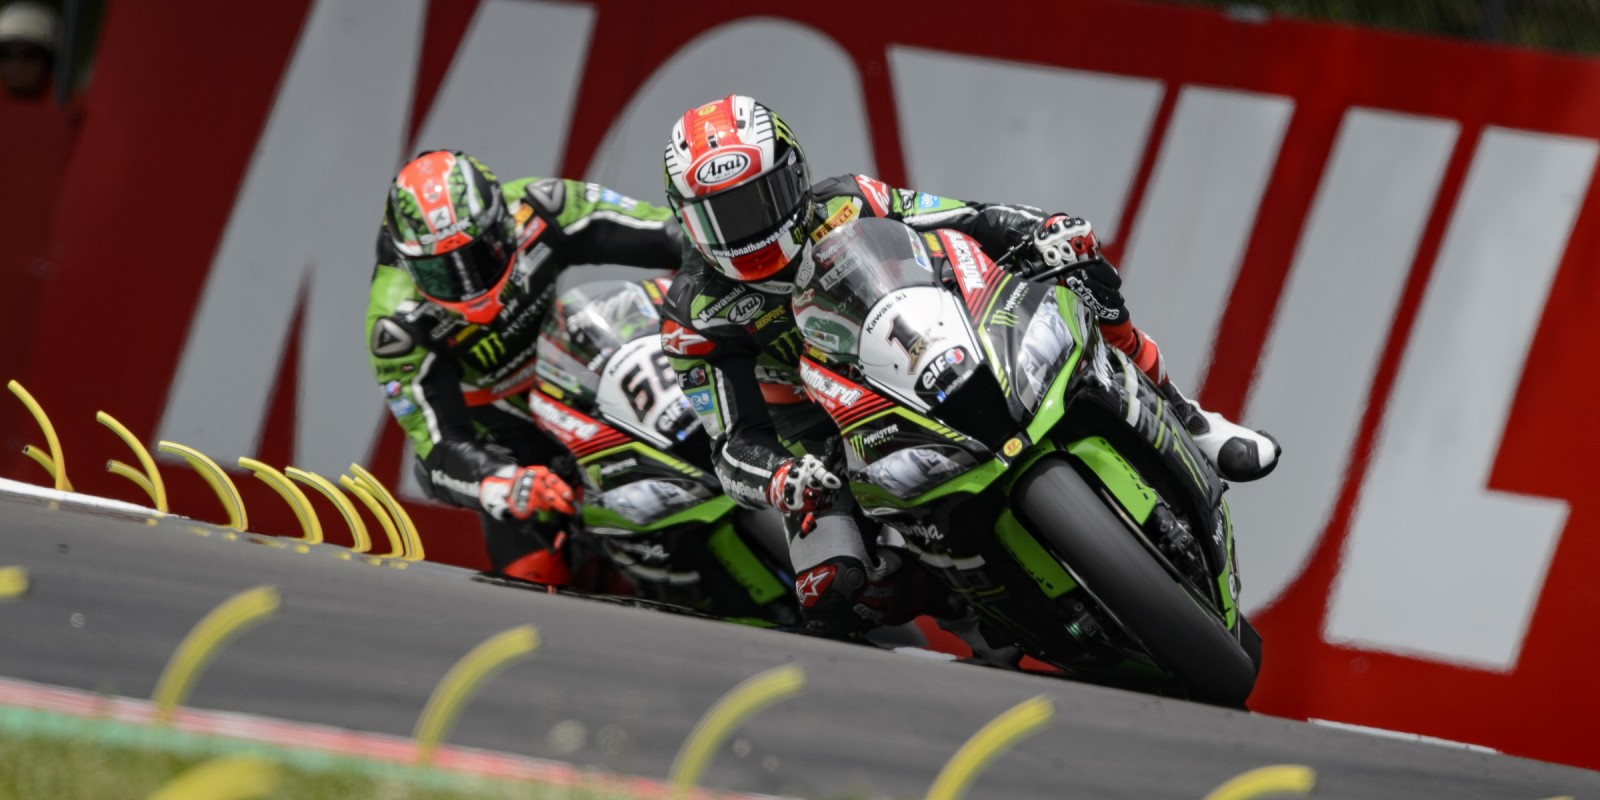 Jonathan Rea in action and on the grid at the fifth round of the WorldSBK championship at Imola